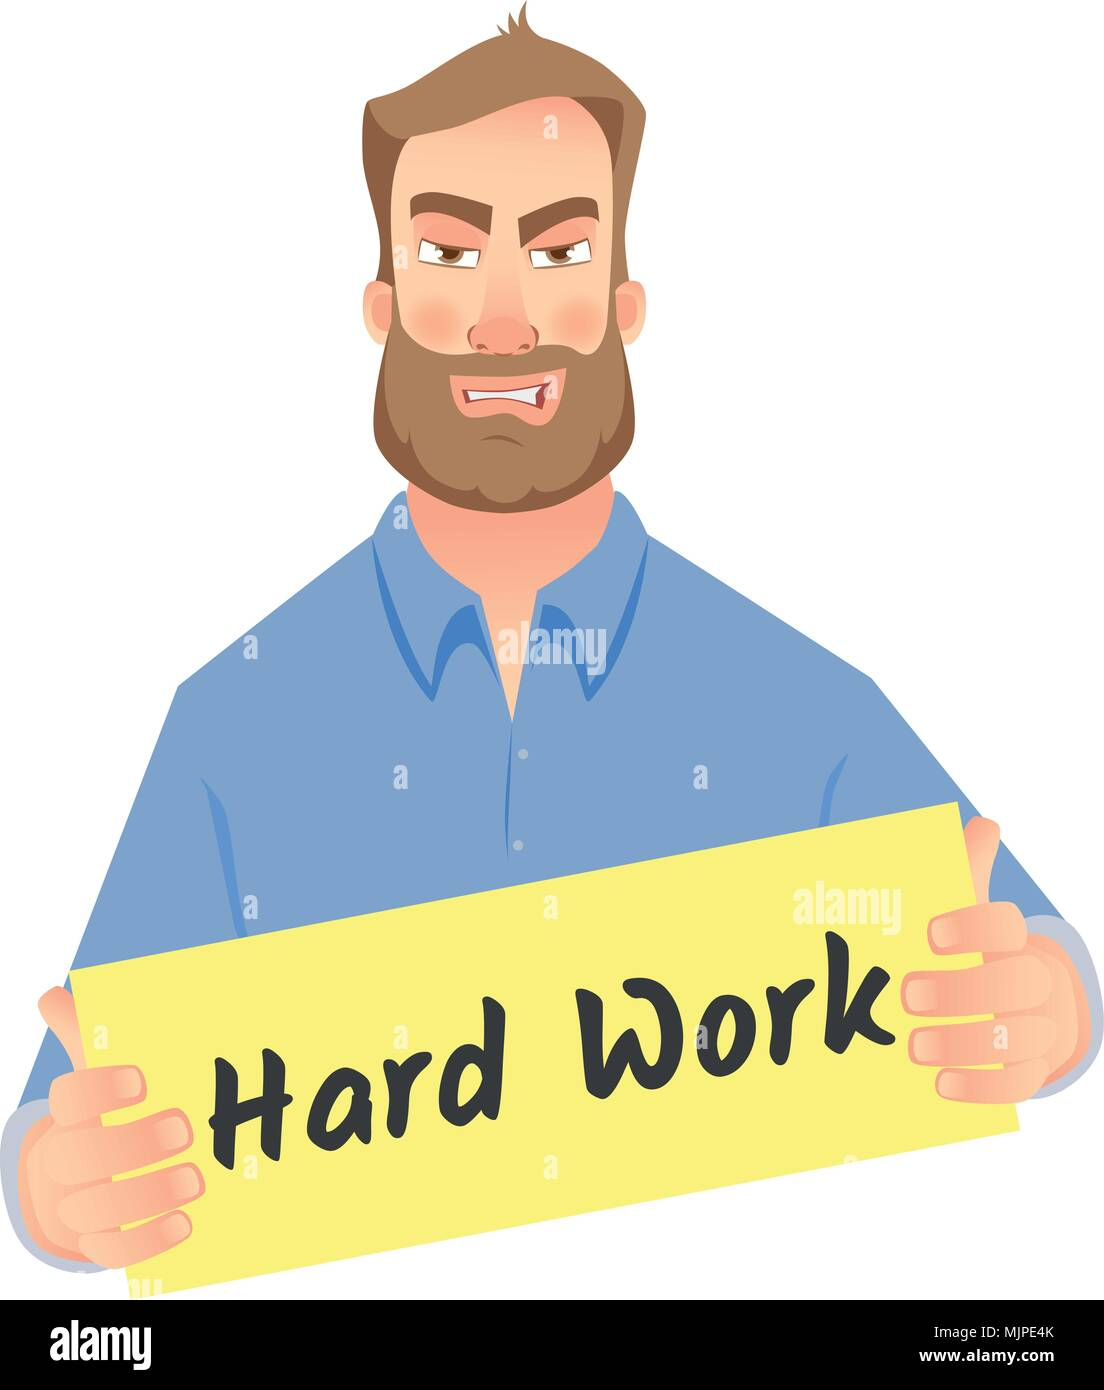 man holding hard work sign - Stock Vector